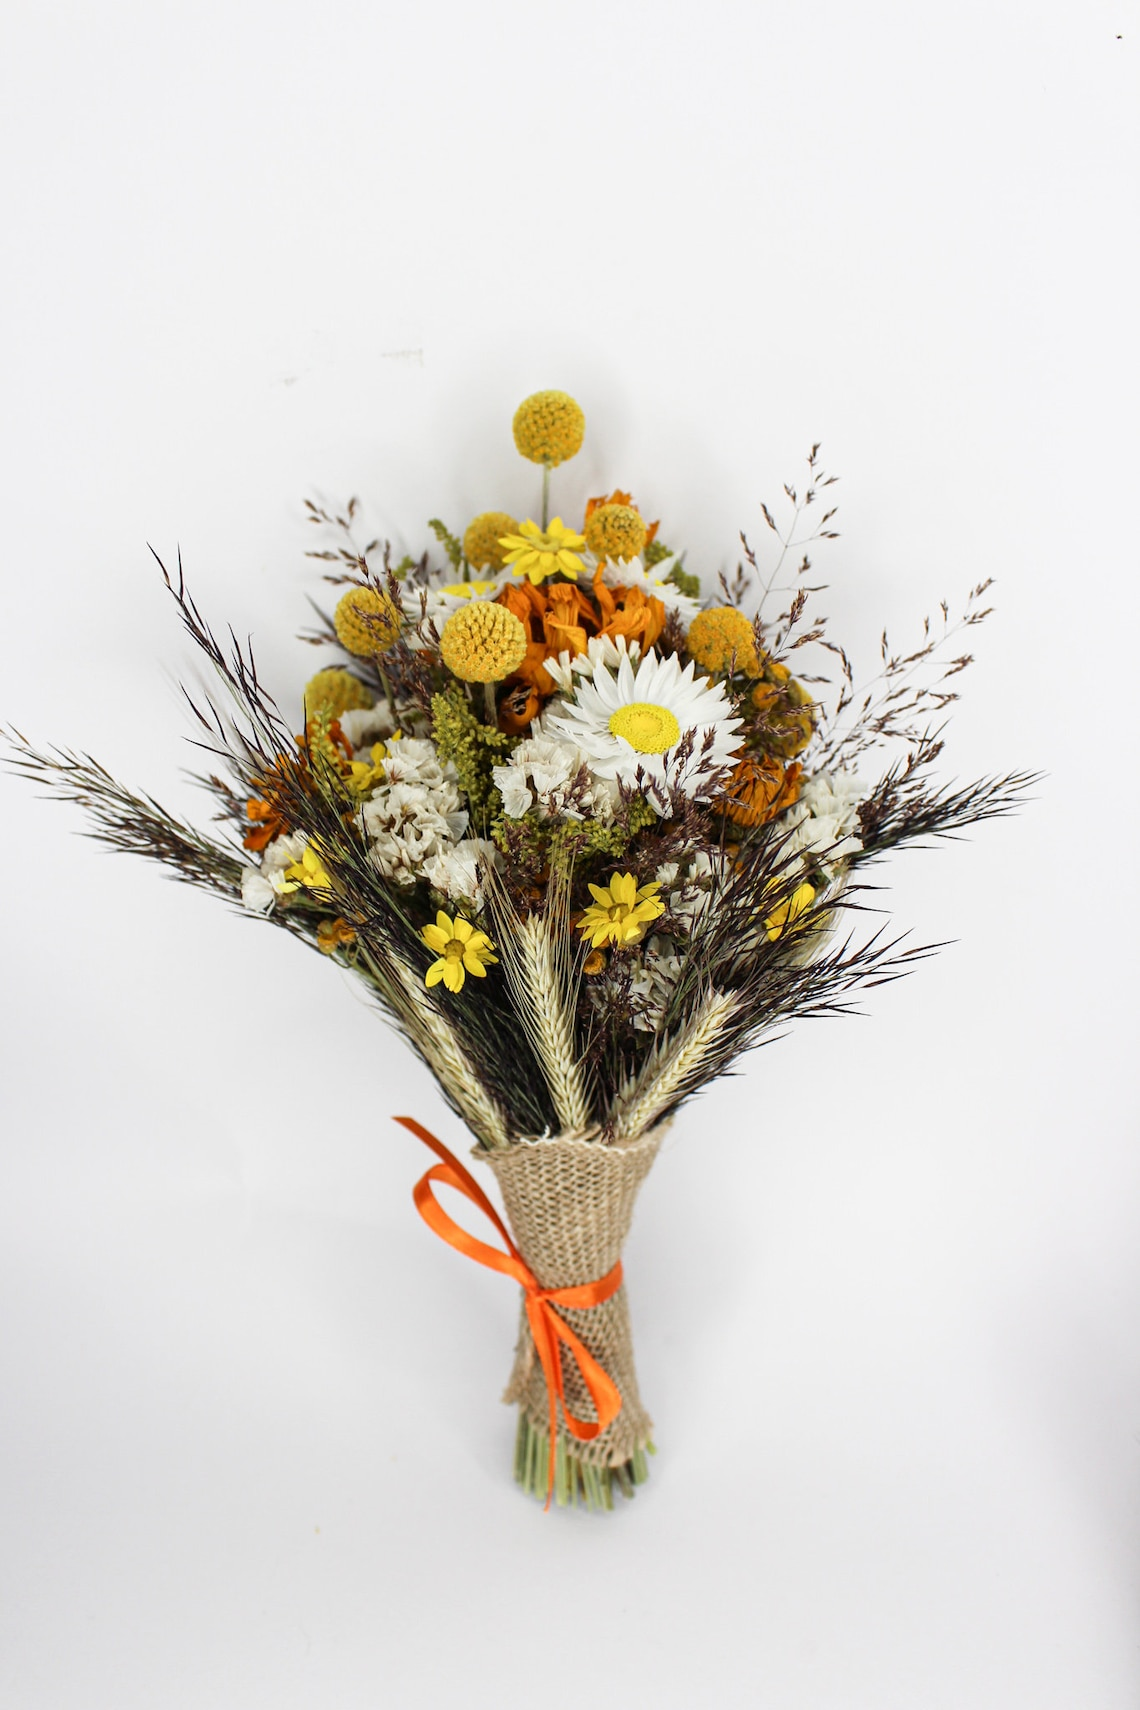 Autumn dried flower bouquet  Dried fall rustic wedding image 2